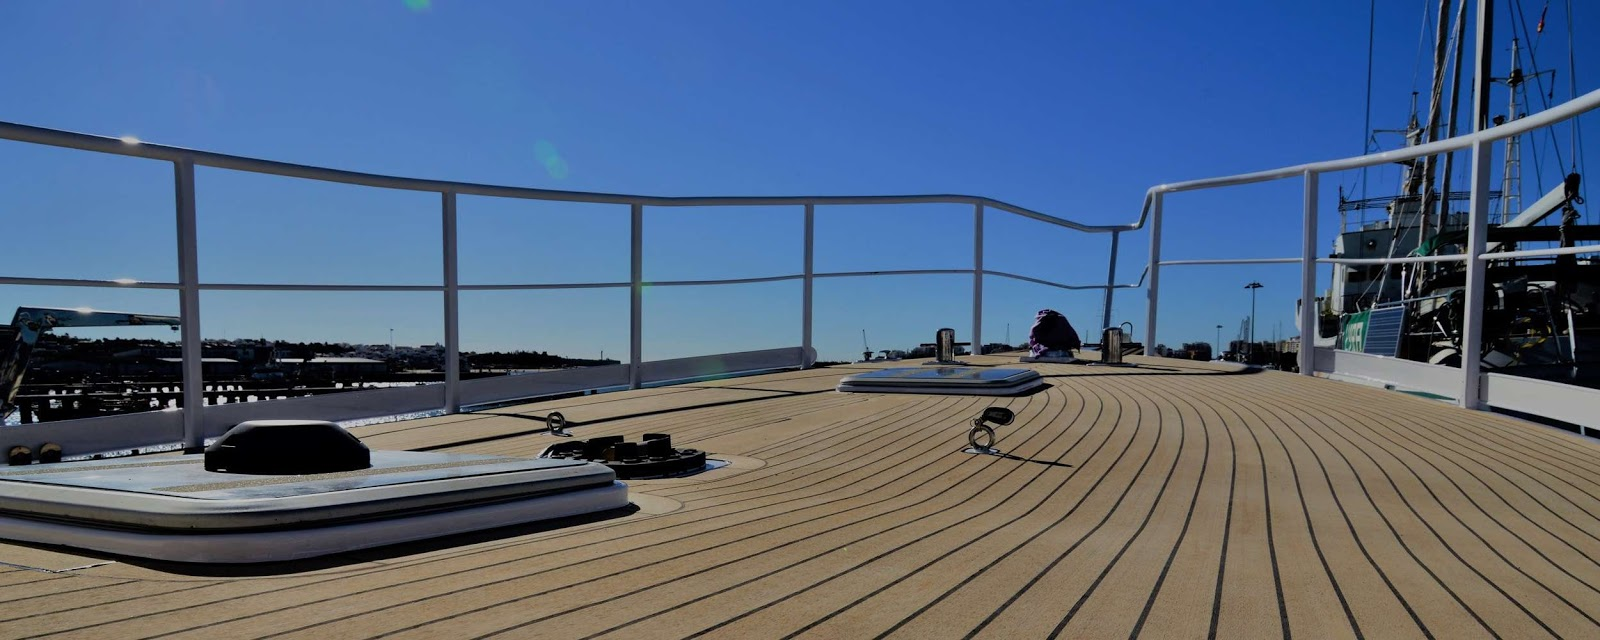 Sunbleached decking on a steel cutter rigger ketch motor sailer